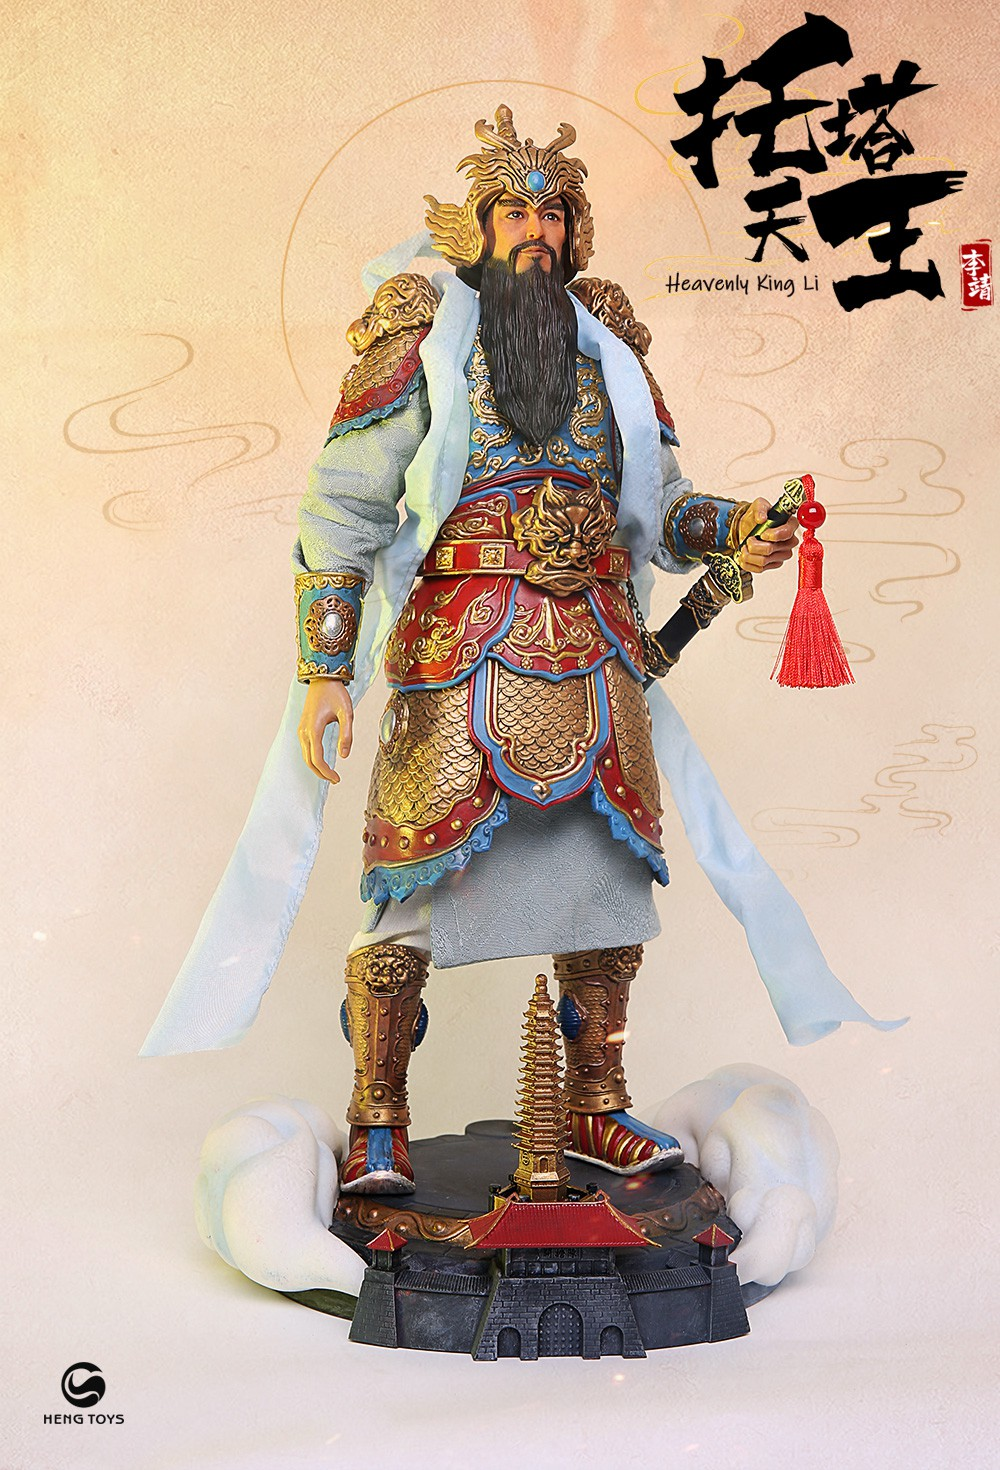 NEW PRODUCT: HENG TOYS: 1/6 Chinese Mythology Taoist Protector God Heavenly King Li, Li Tianwang action figure (PE-005) 14031810